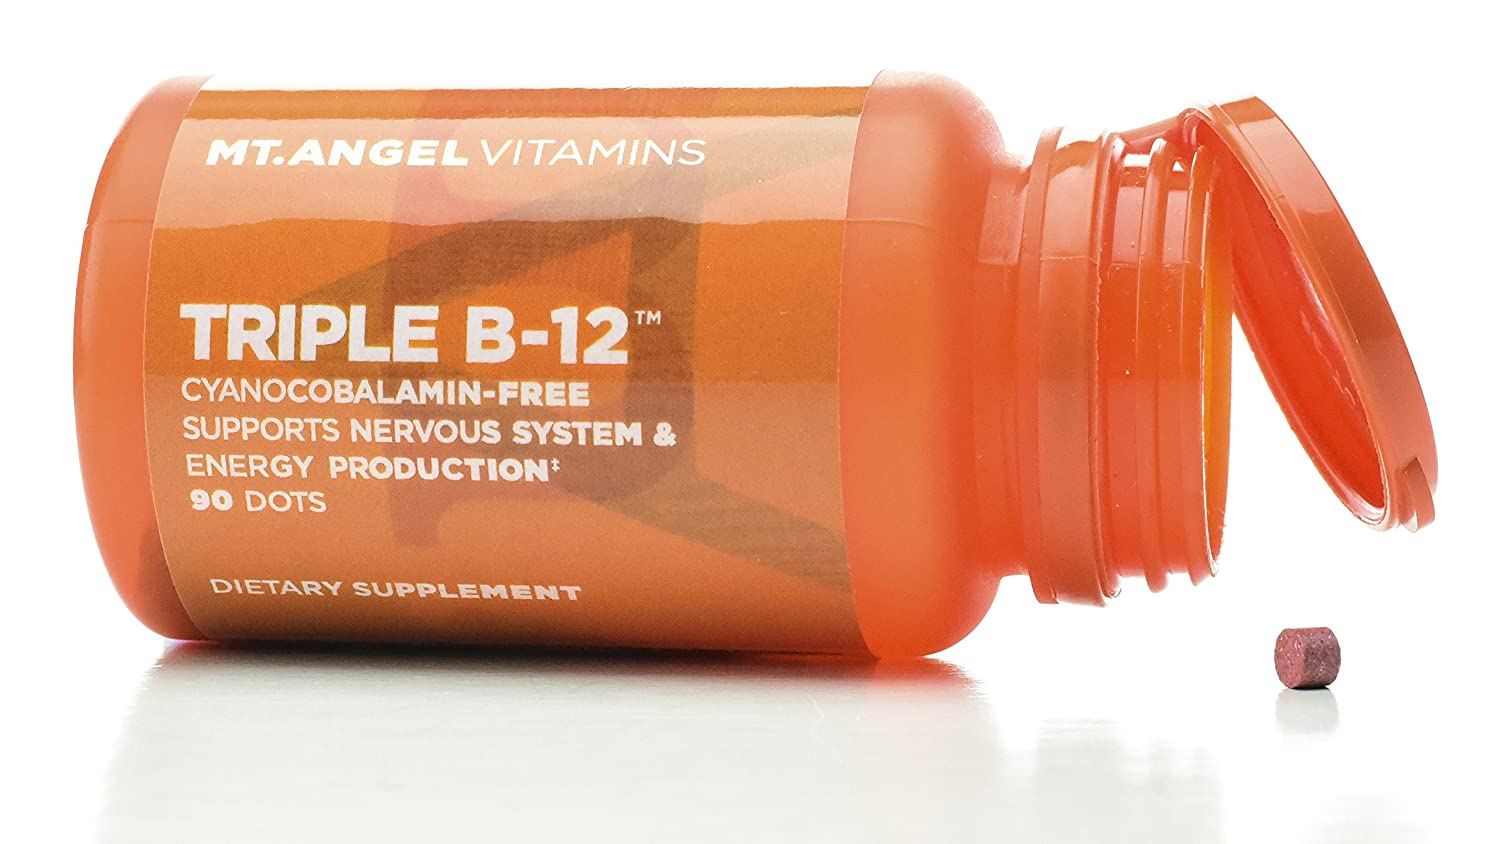 Mt. Angel Vitamins - Triple B-12 Dots, Supports Nervous System & Energy Production (90 Dots)